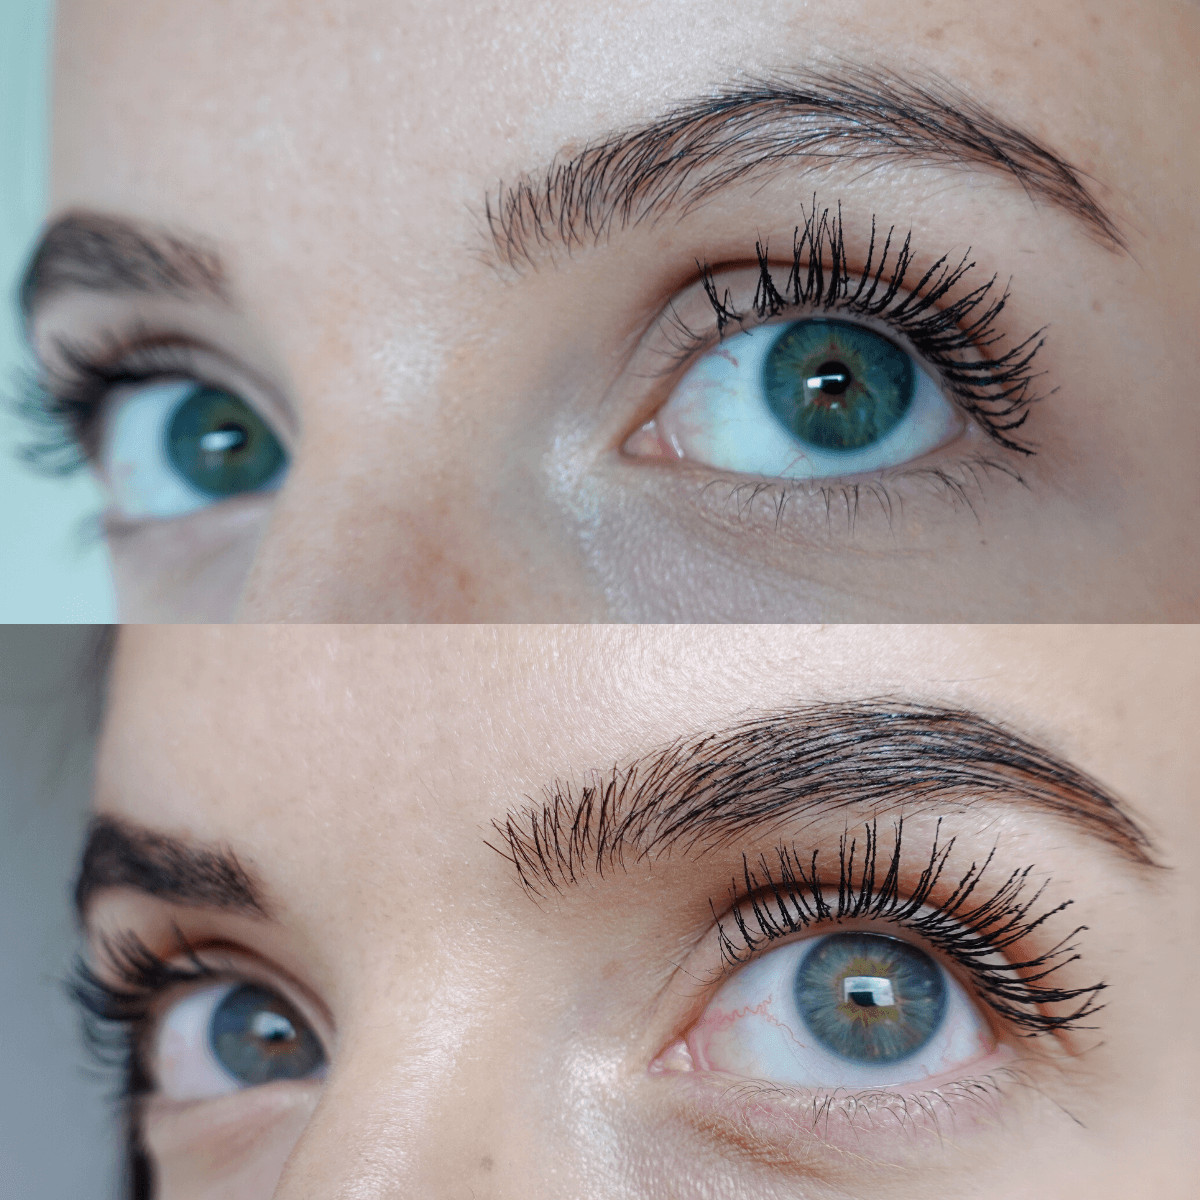 Benefit 24 Hour Brow Setter before and after